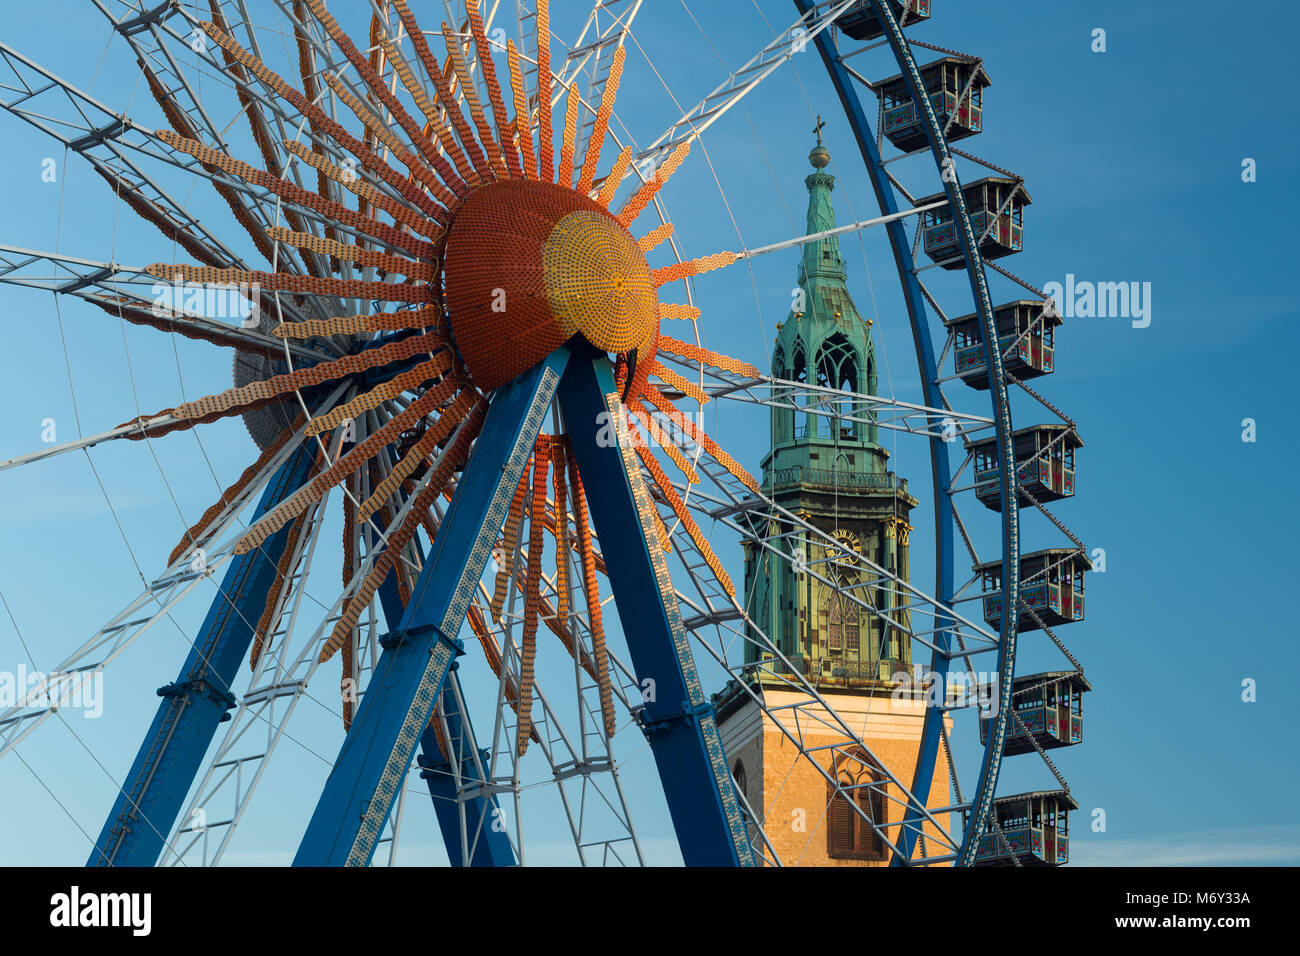 A ferris wheel at Neptunbrunnen with Marienkirche behind, Mitte, Berlin, Germany - Stock Image